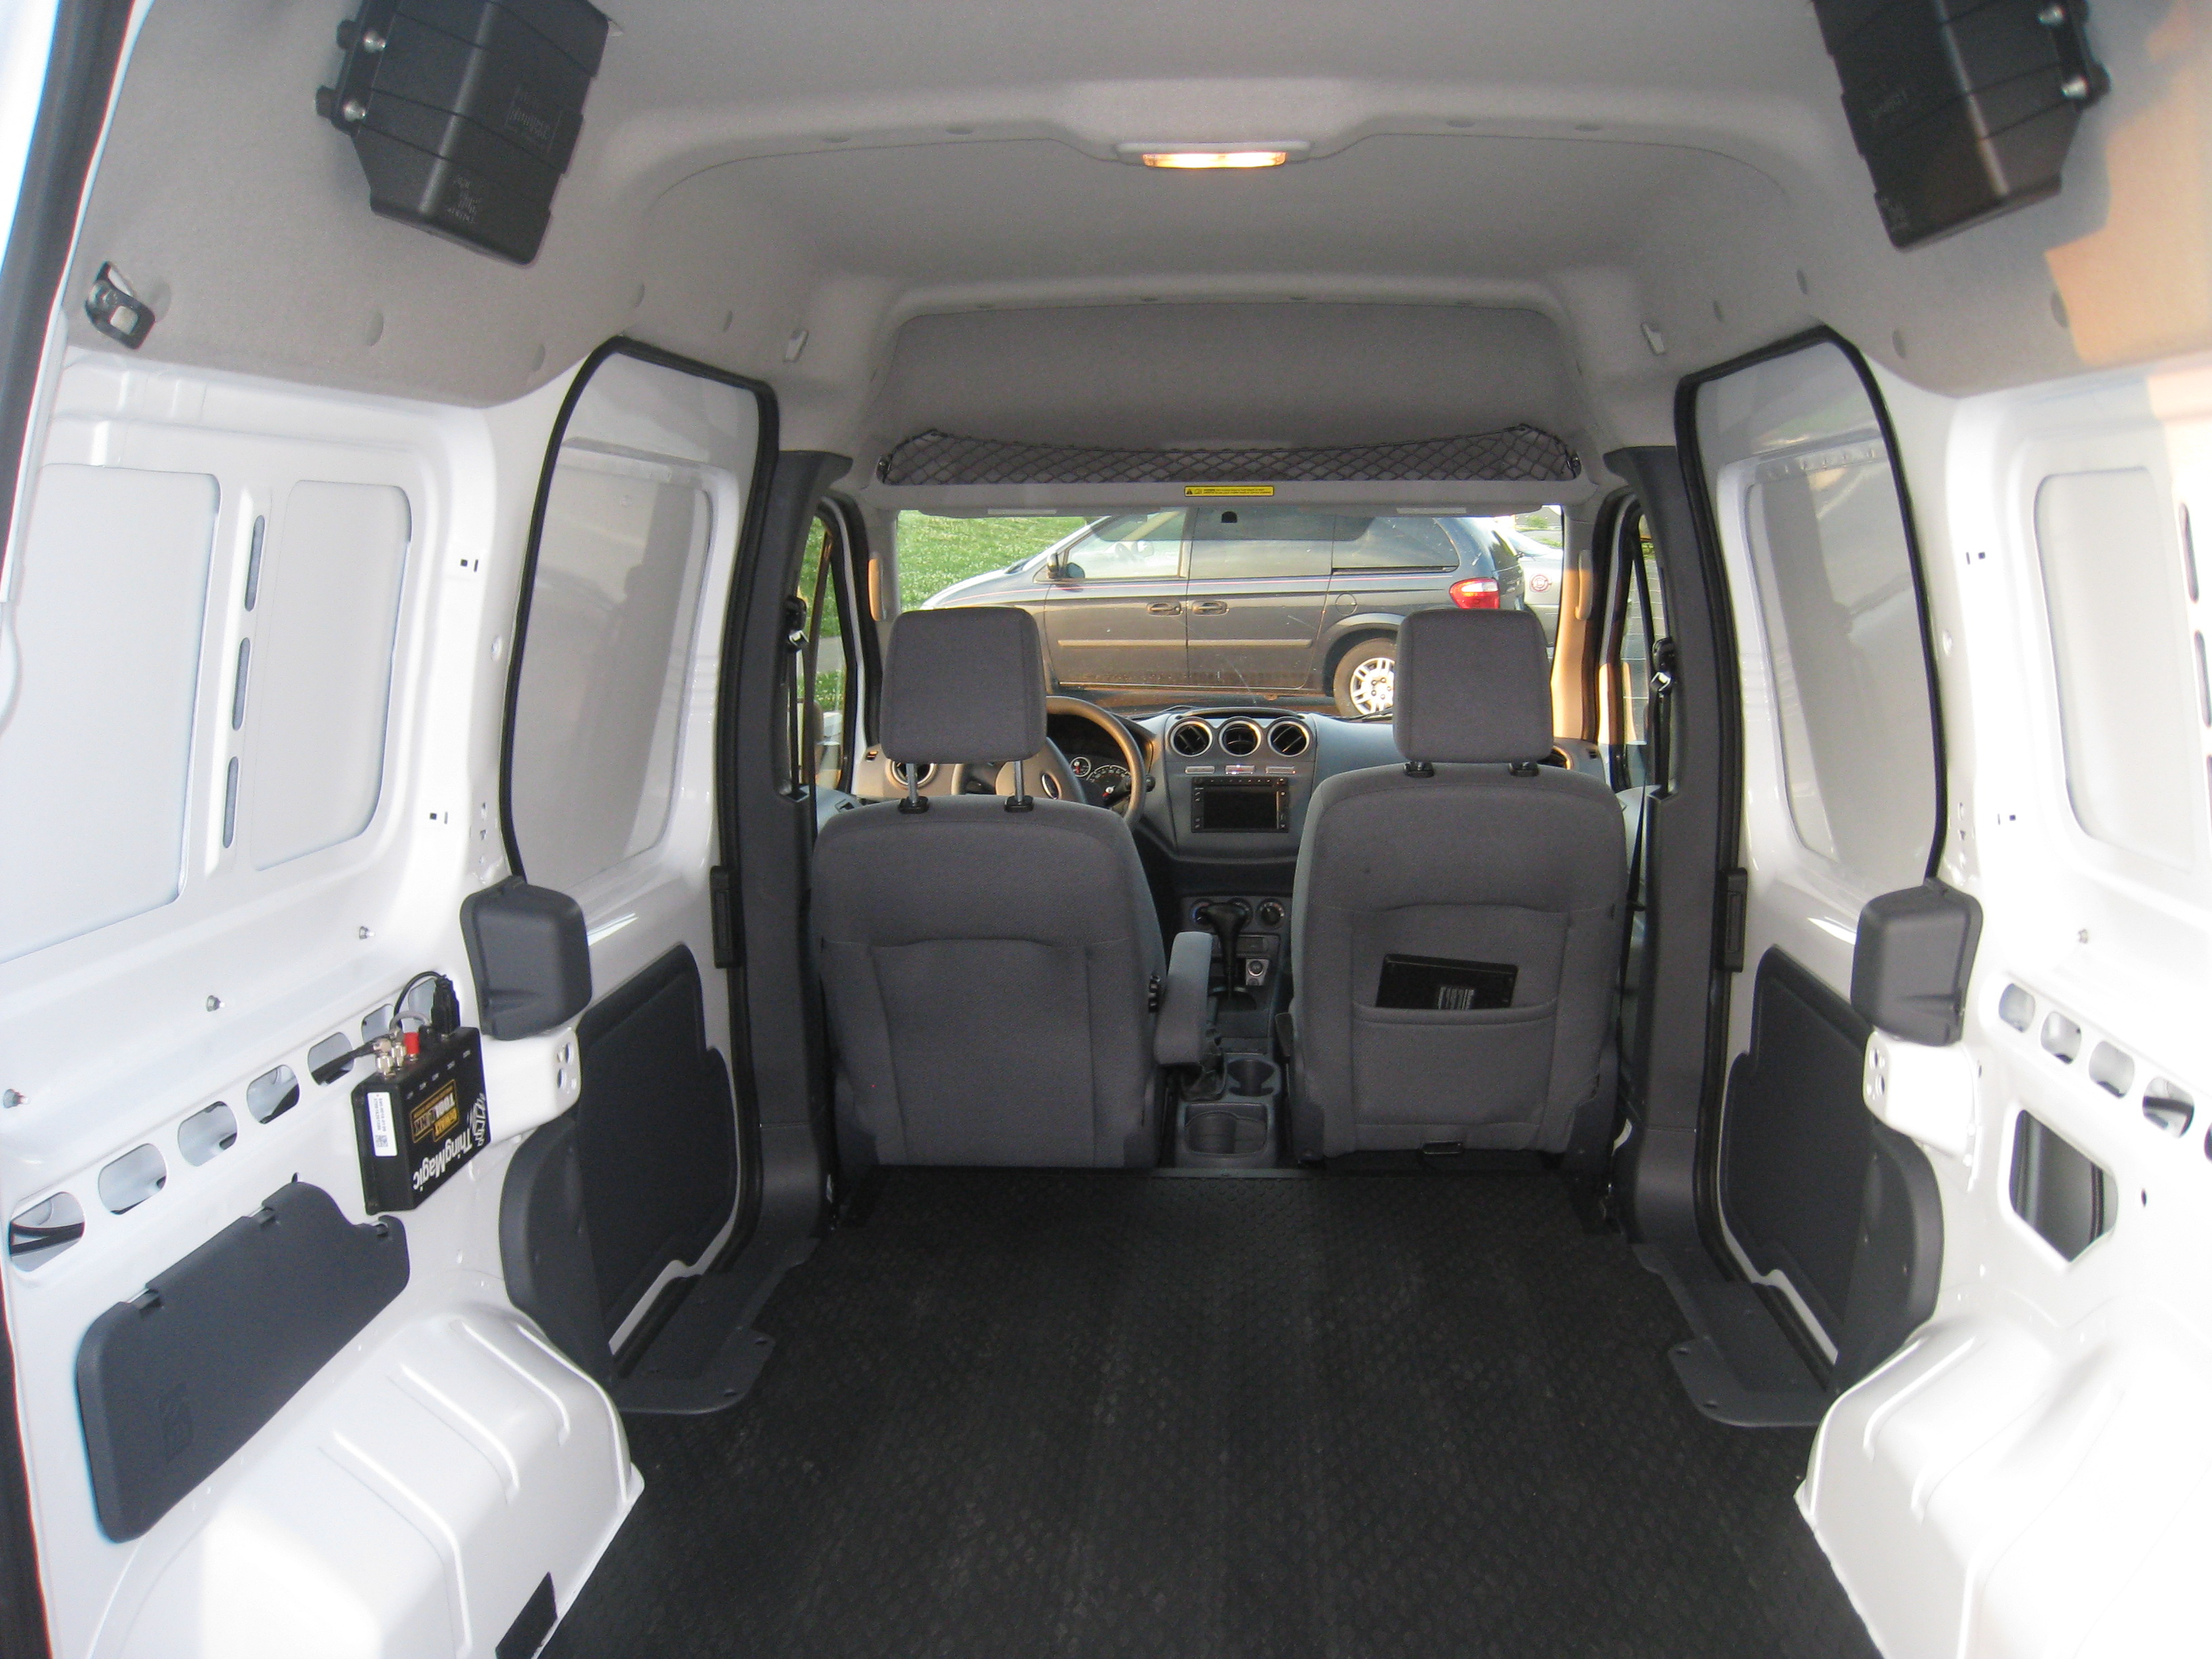 transit floor panels img side mod mats floors s carpet roof ford coverings all and van